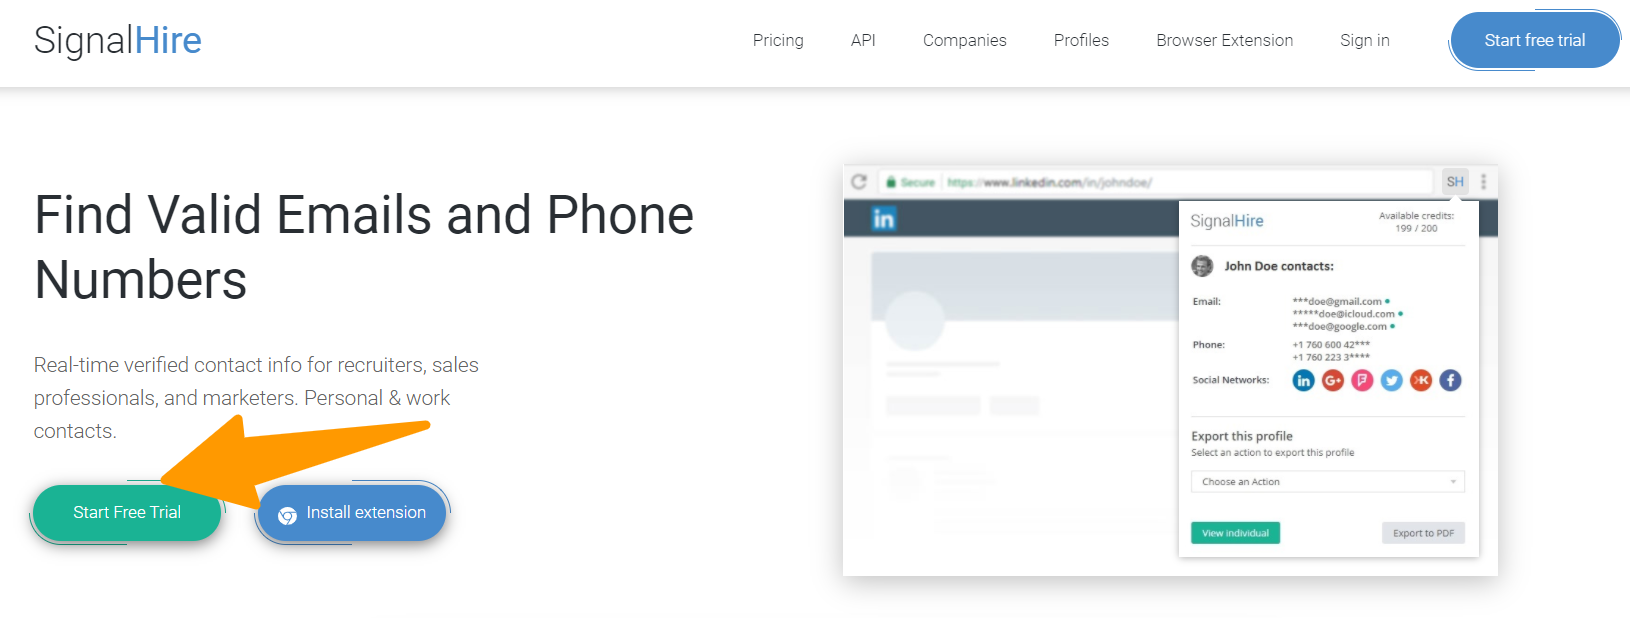 SignalHire - Find Email Tool